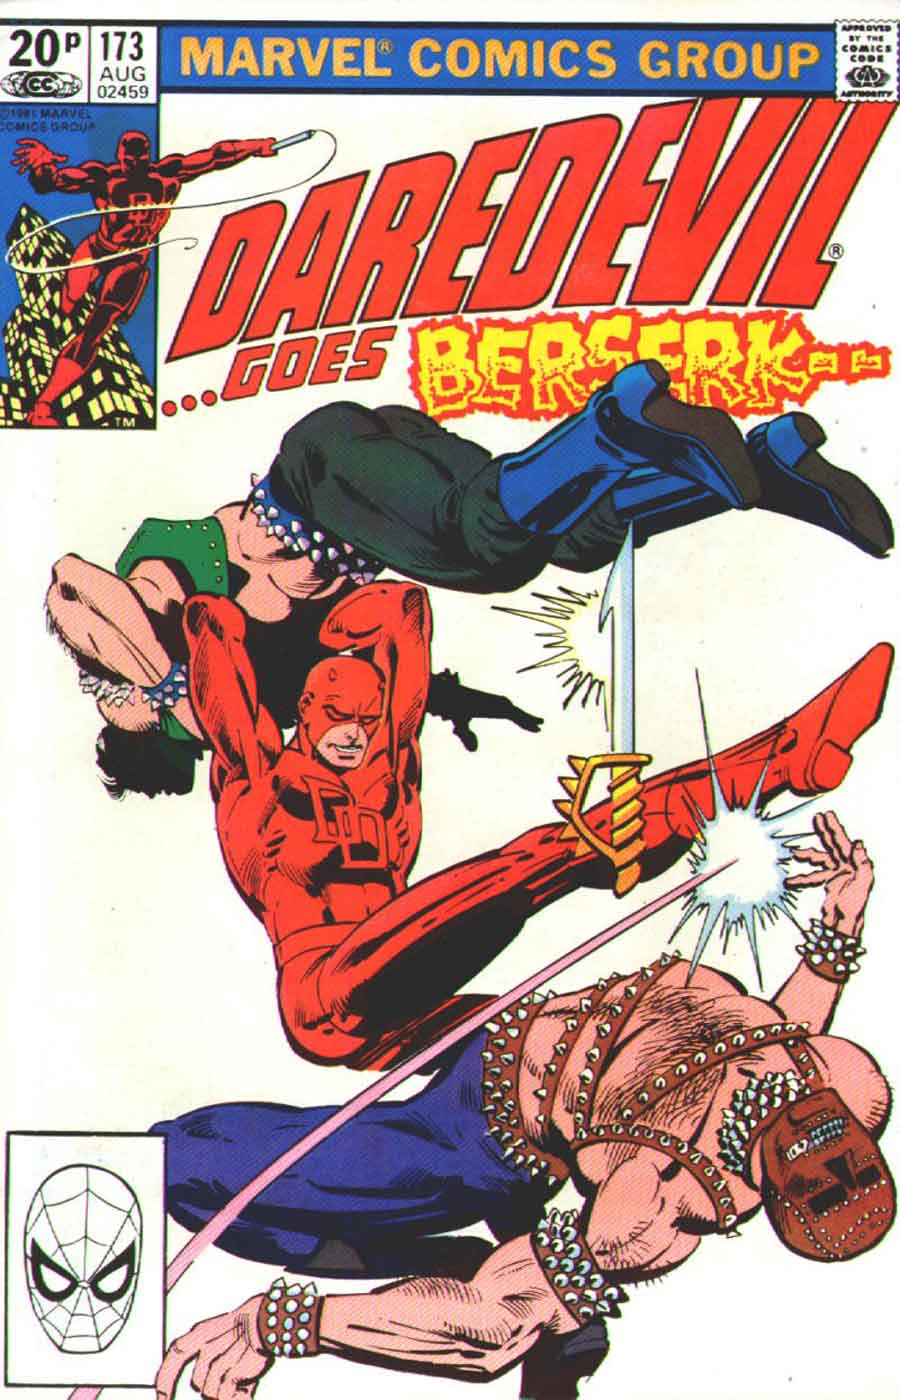 Daredevil v1 #173 marvel comic book cover art by Frank Miller